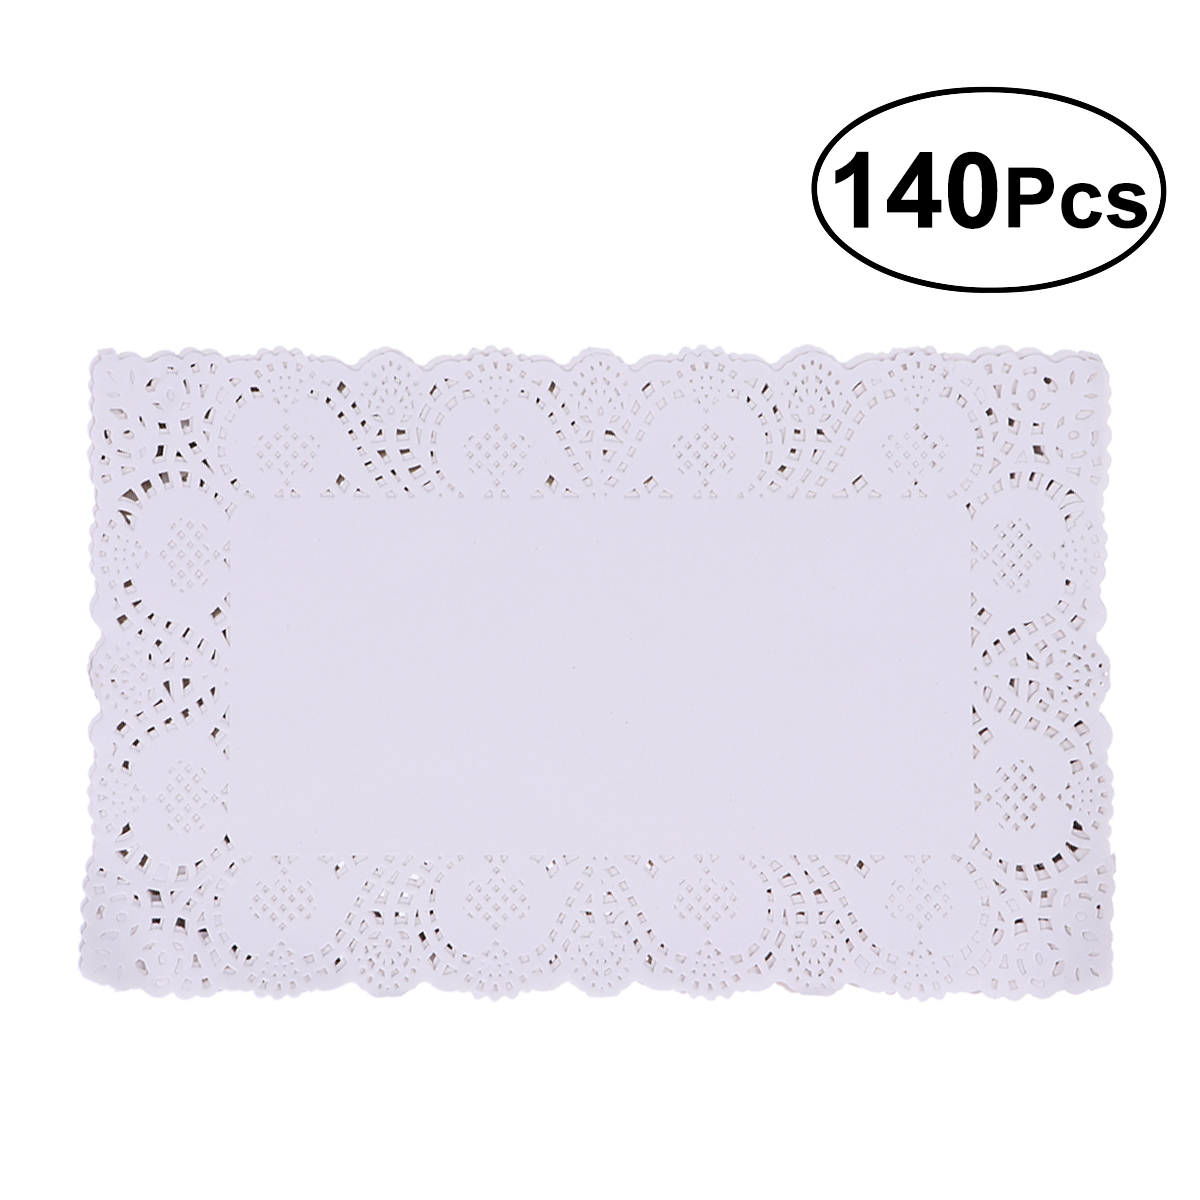 140pcs Pack Paper Doilies White Oil Absorbing Rectangle